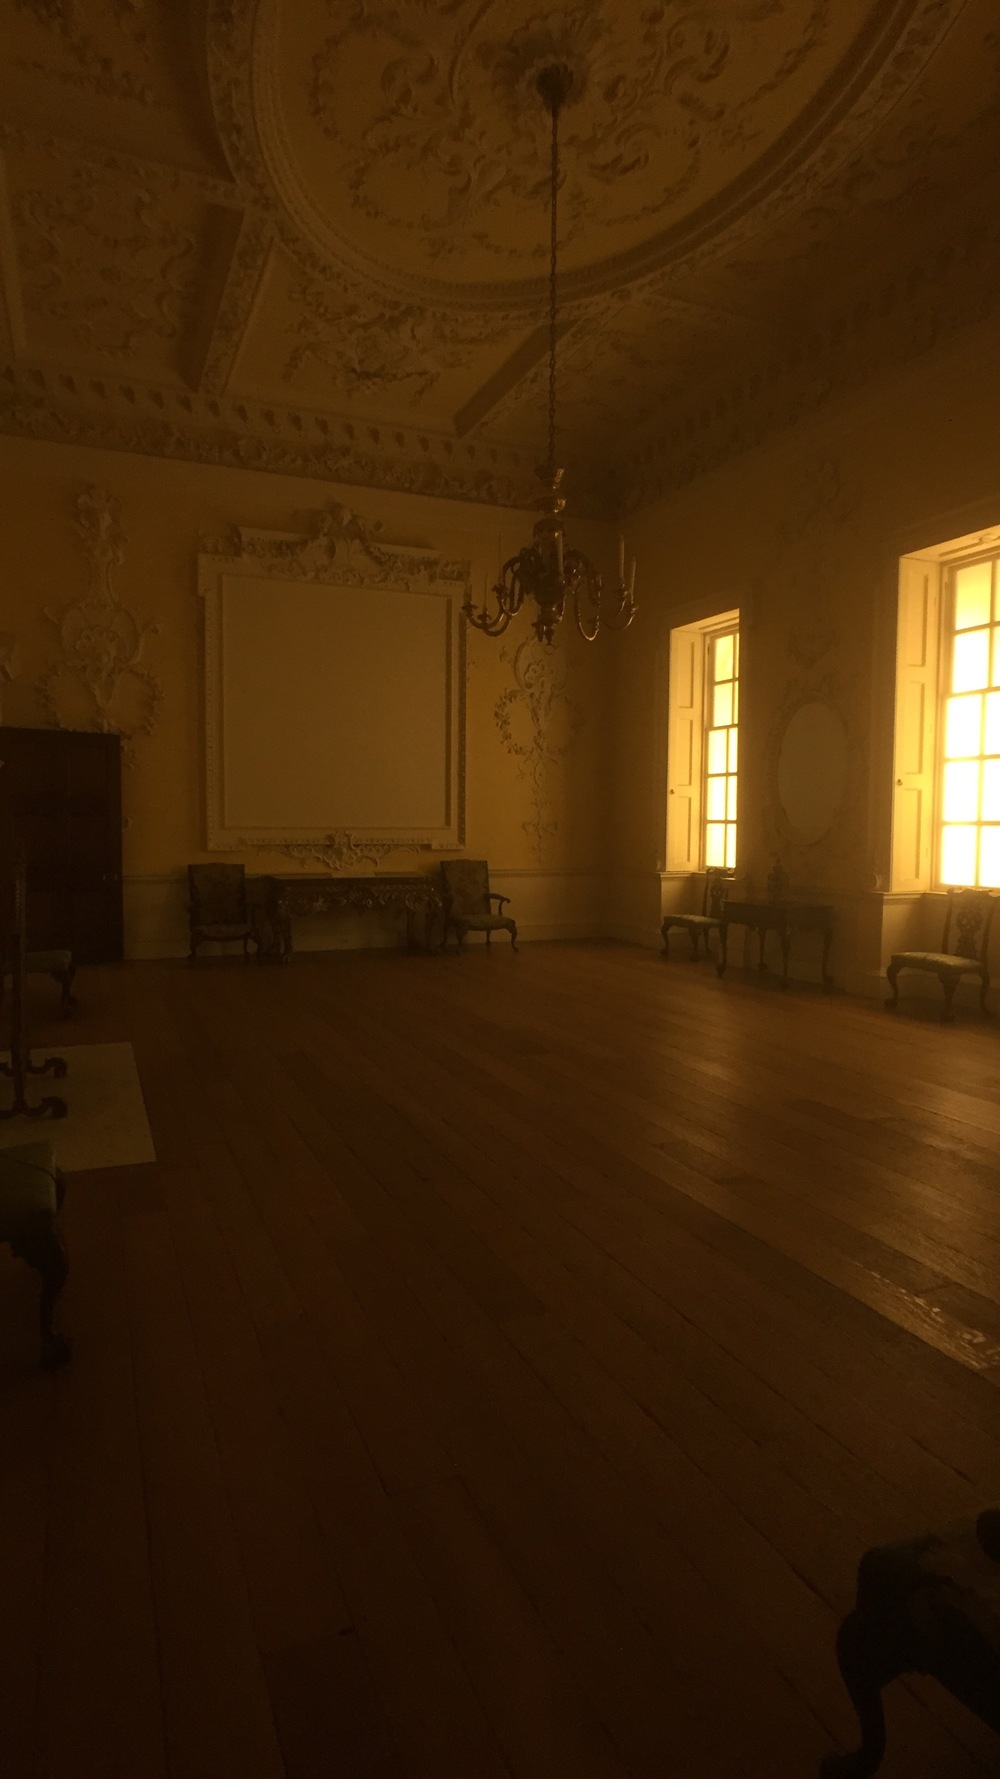 A late 18th century dining room on the upper floors of the European Sculpture and Decorative Arts Wing is amber lit in the morning light